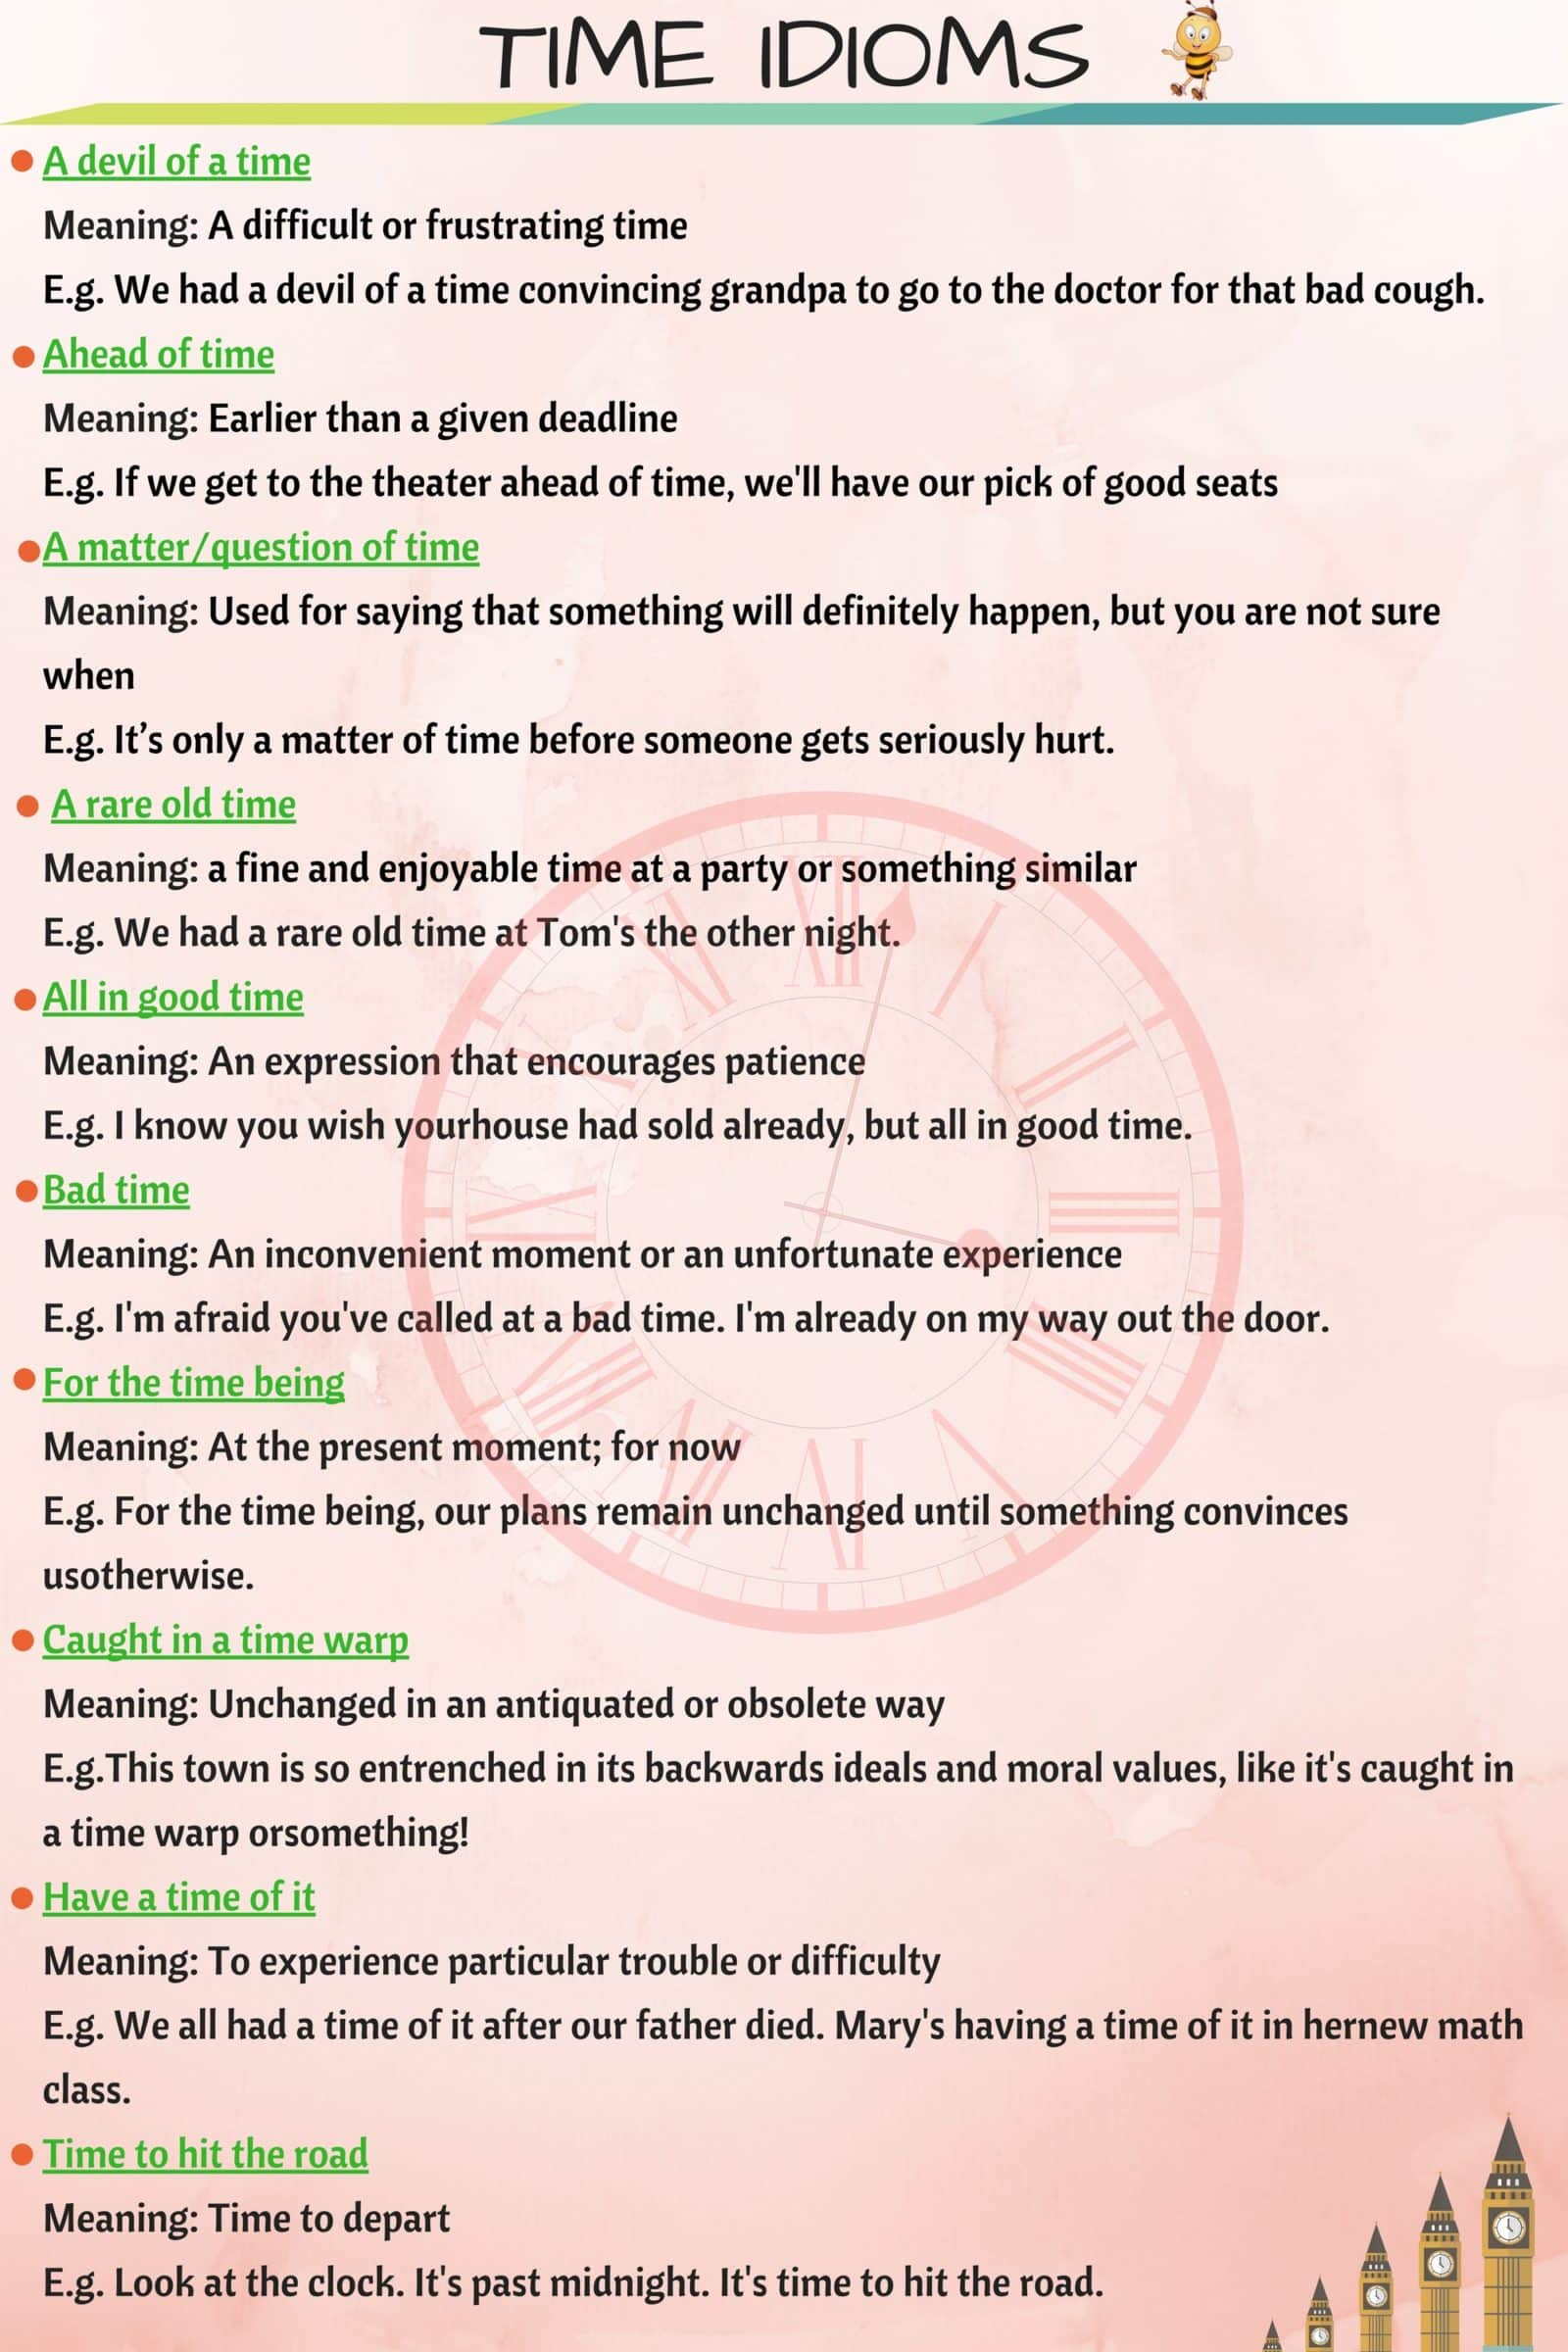 30 Common English Idioms Related to TIME